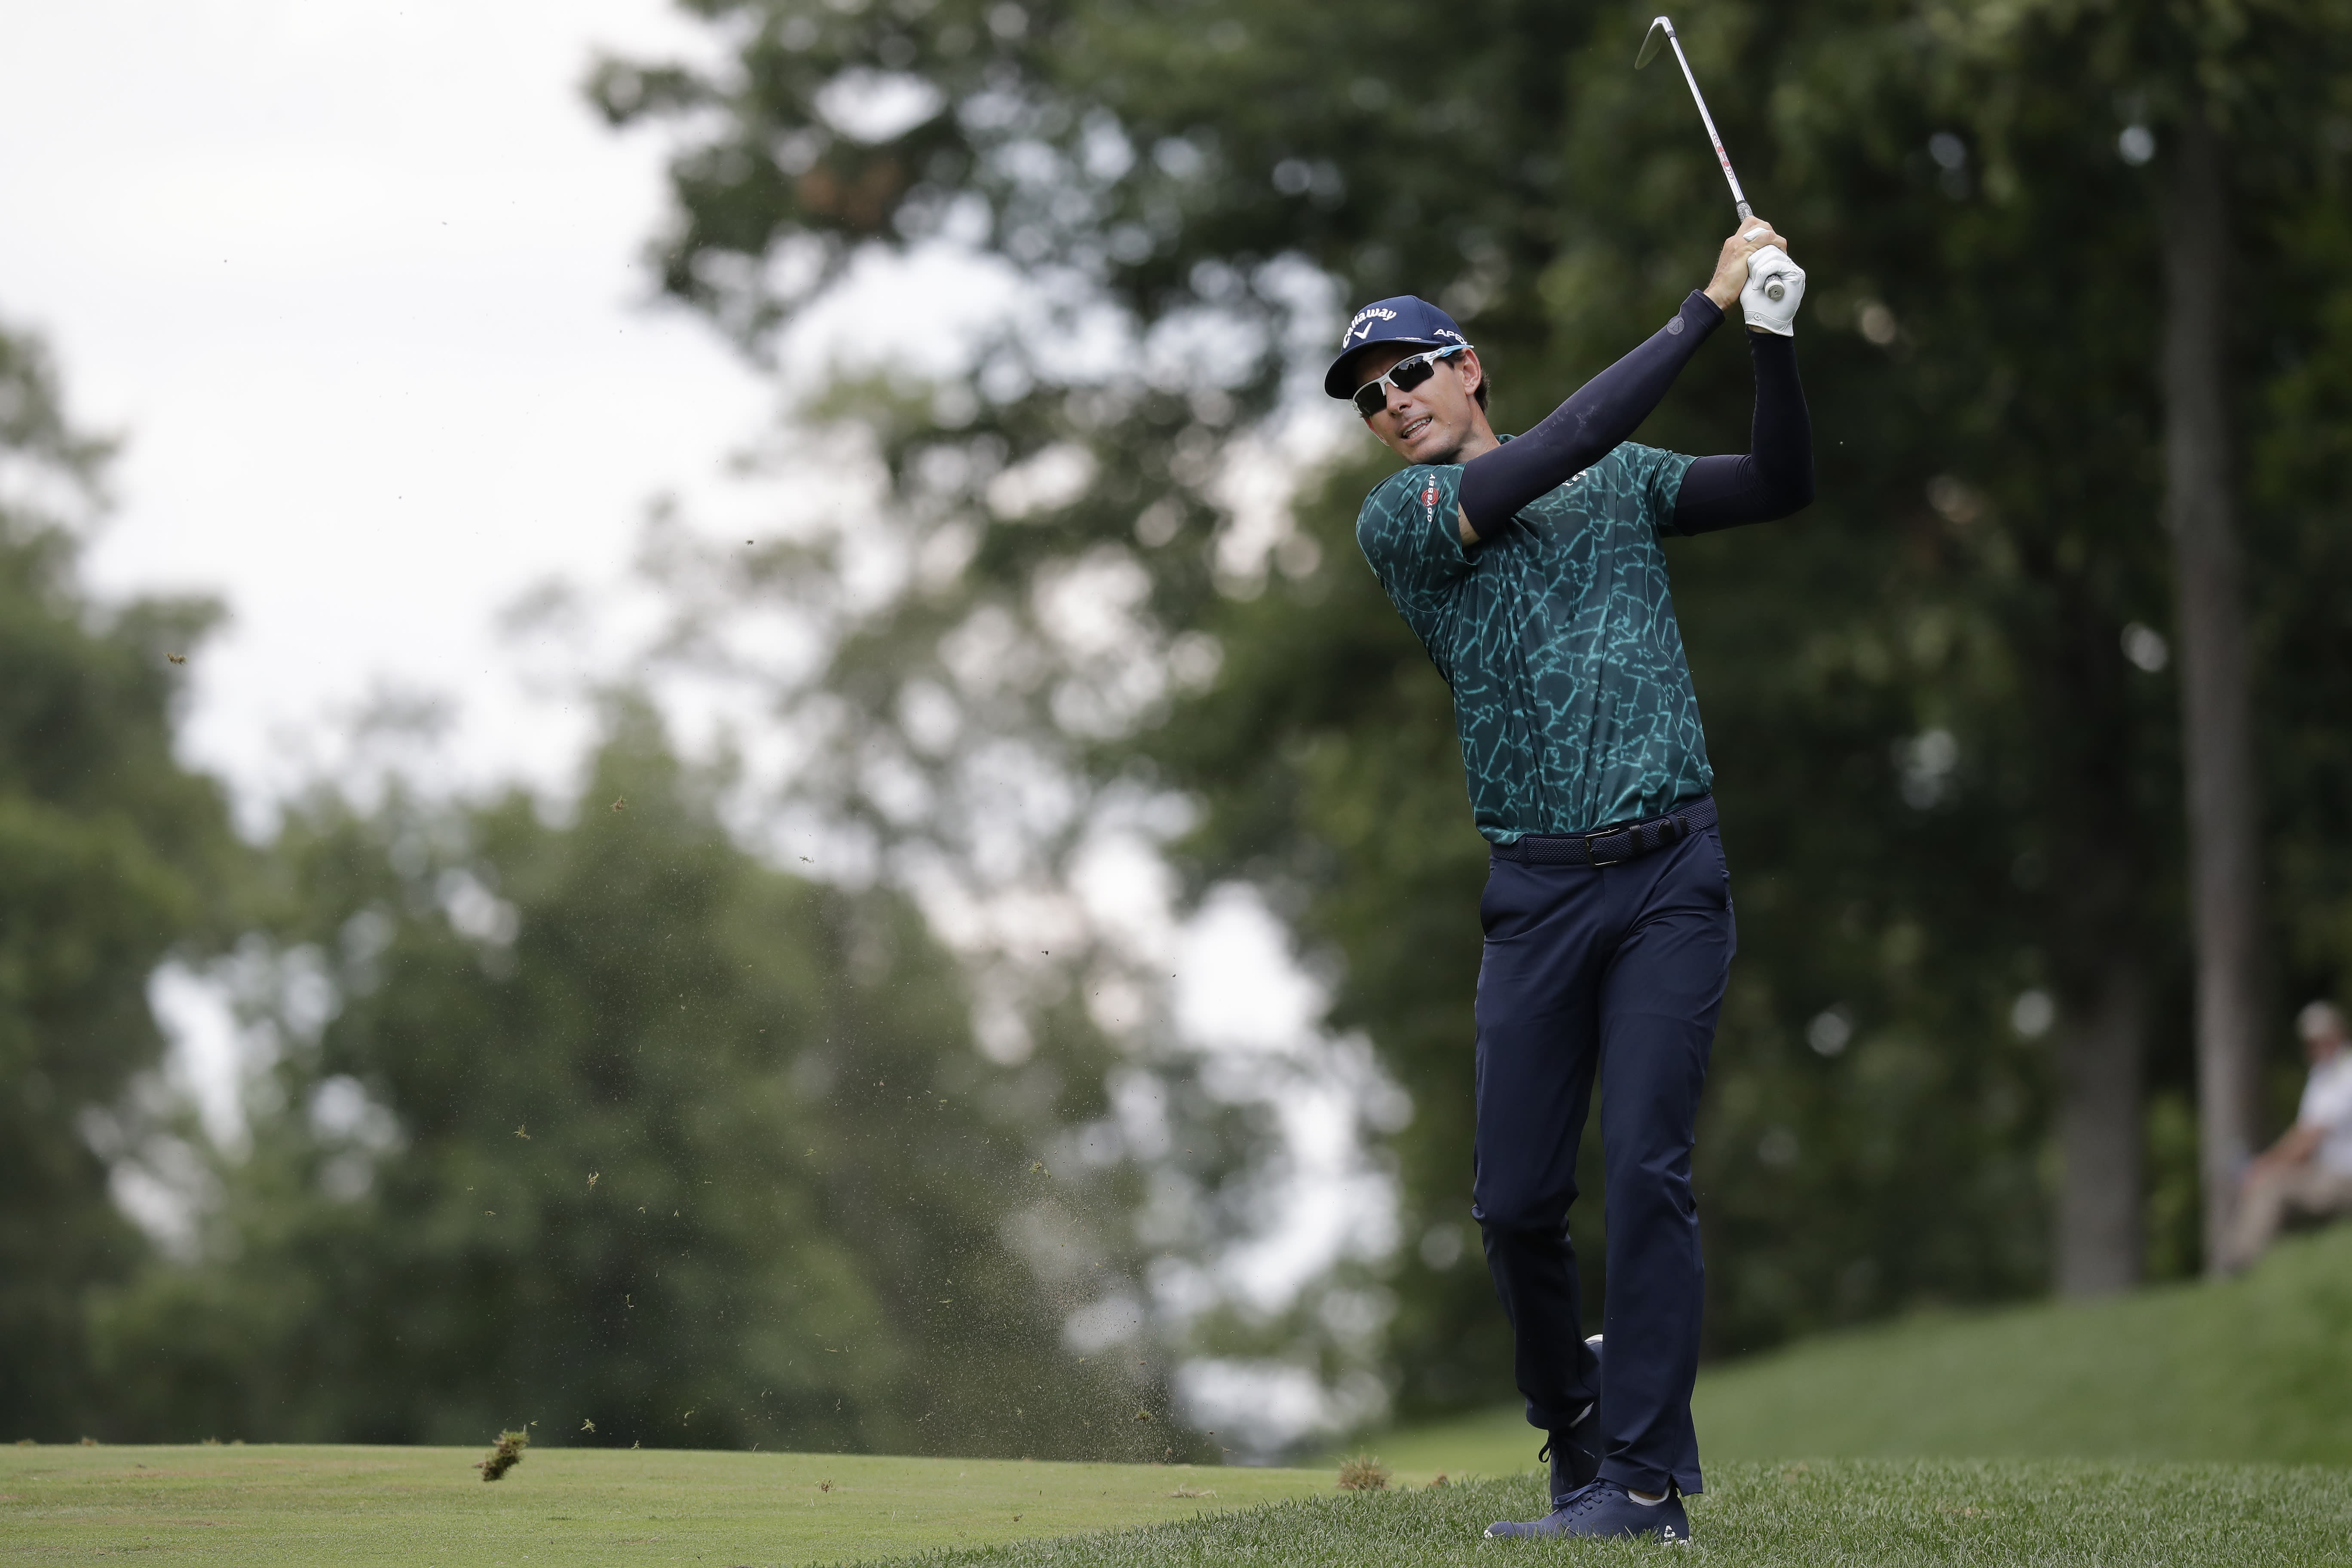 Dylan Frittelli, of South Africa, hits to the ninth fairway during the third round of the Memorial golf tournament, Saturday, July 18, 2020, in Dublin, Ohio. Frittelli, who had tested positive for the coronavirus, played Saturday without a playing partner. (AP Photo/Darron Cummings)